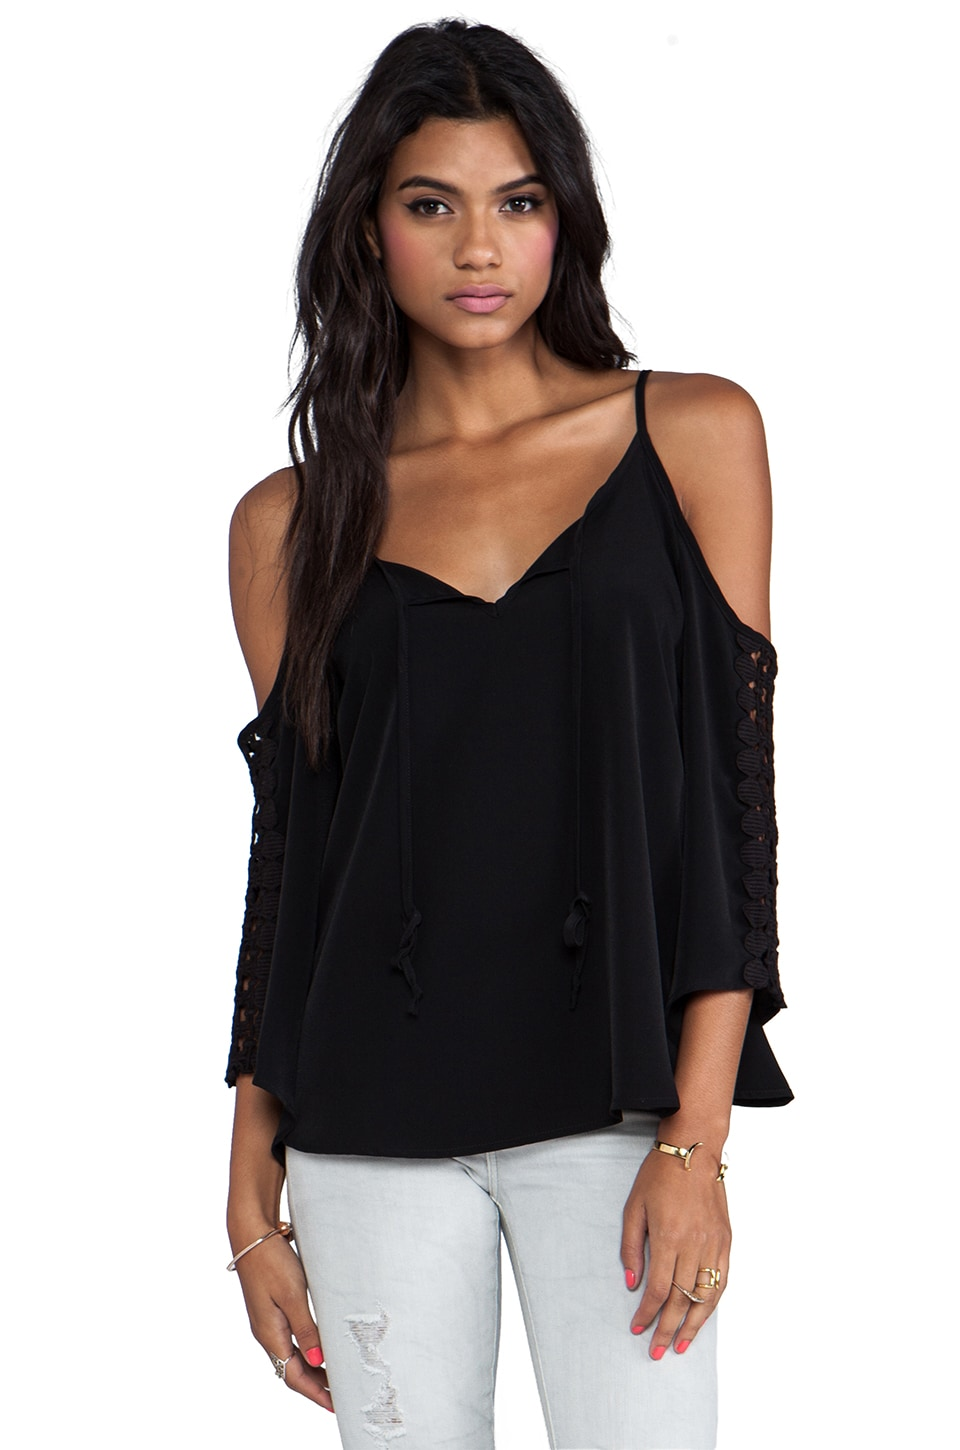 VAVA by Joy Han Elena Open Shoulder Top in Black